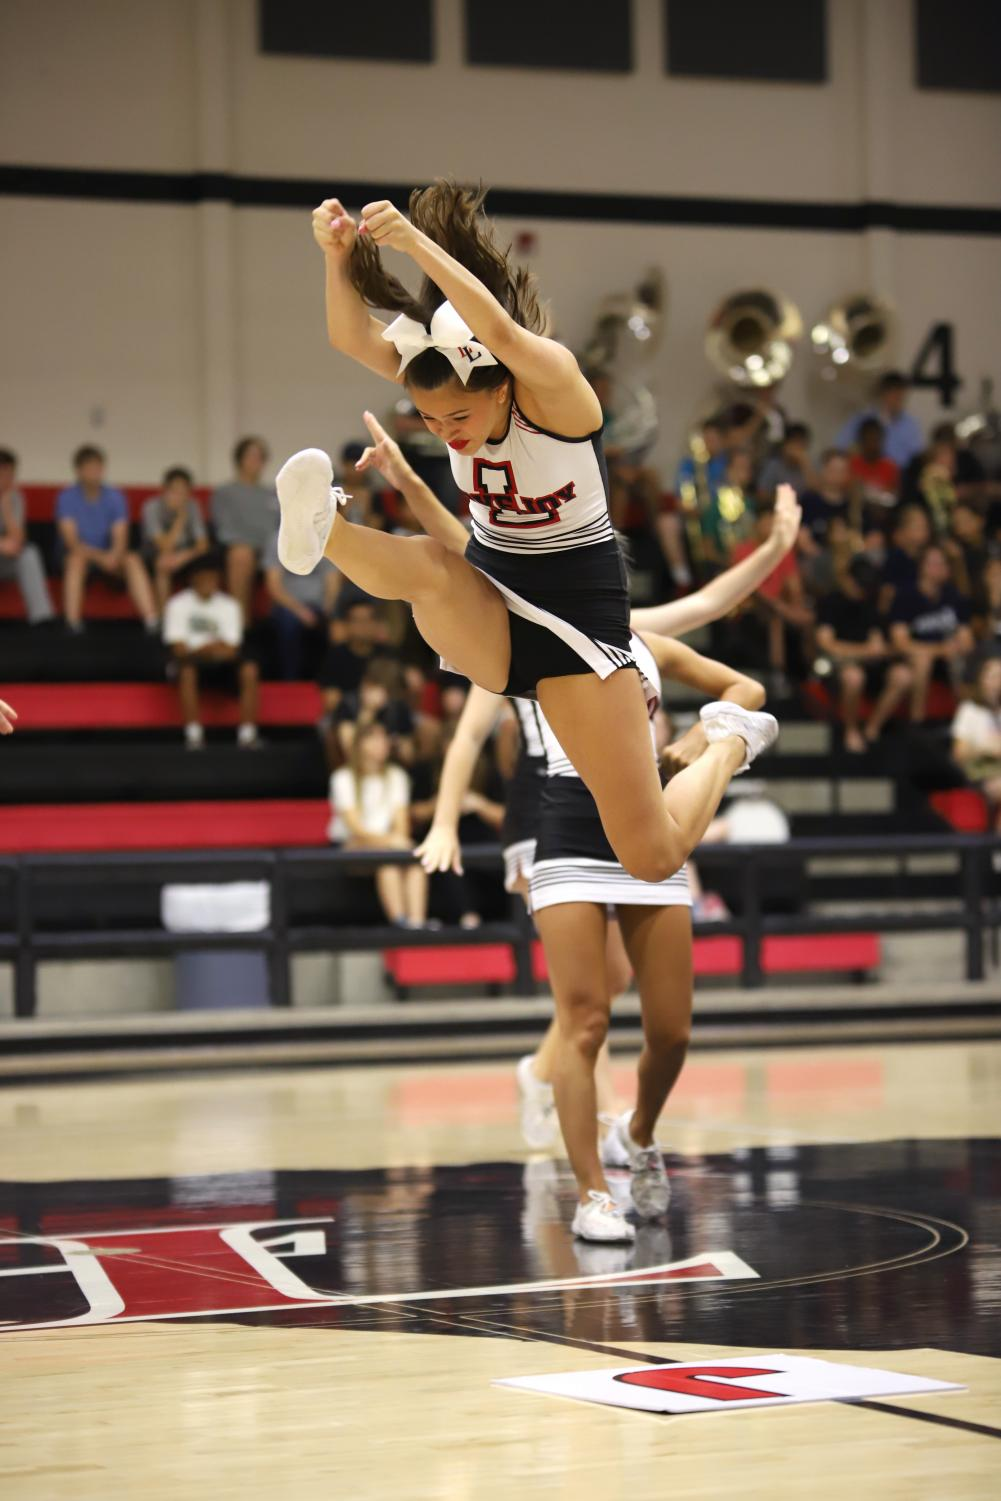 Senior+Taylor+Dismukes+jumps+into+a+herkie+during+the+beginning+portion+of+the+pep-rally.+Dismukes+is+the+captain+for+the+varsity+cheerleading+squad+this+year.